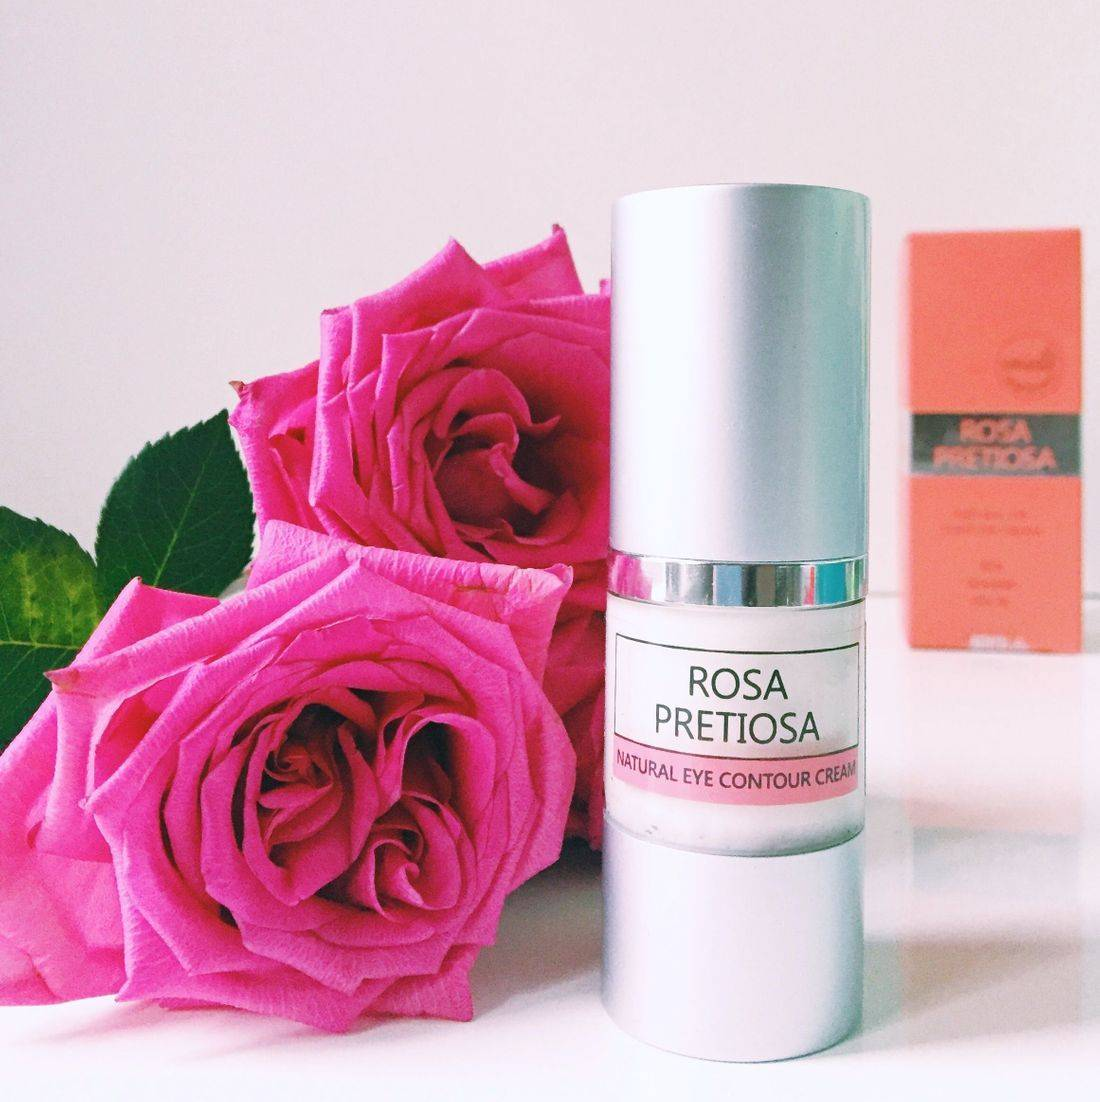 rosa pretiosa natural contour eye cream, rose eye cream, clean rose beauty, rose beauty gift, rosepost box, shop rose skincare